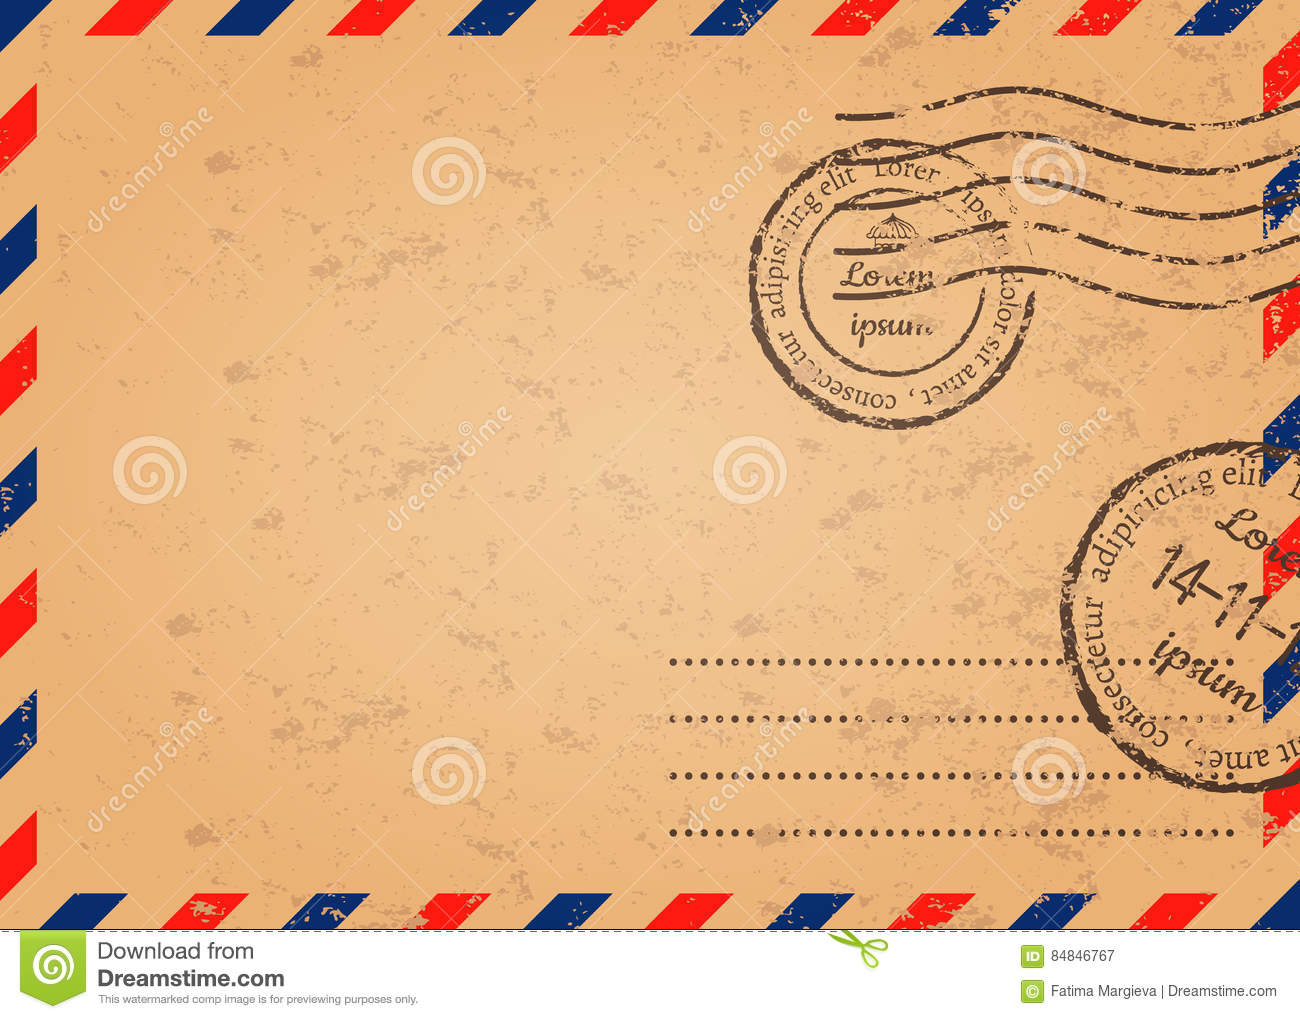 Template Of Mail Envelope Stock Vector Illustration Of Document - Mail envelope template